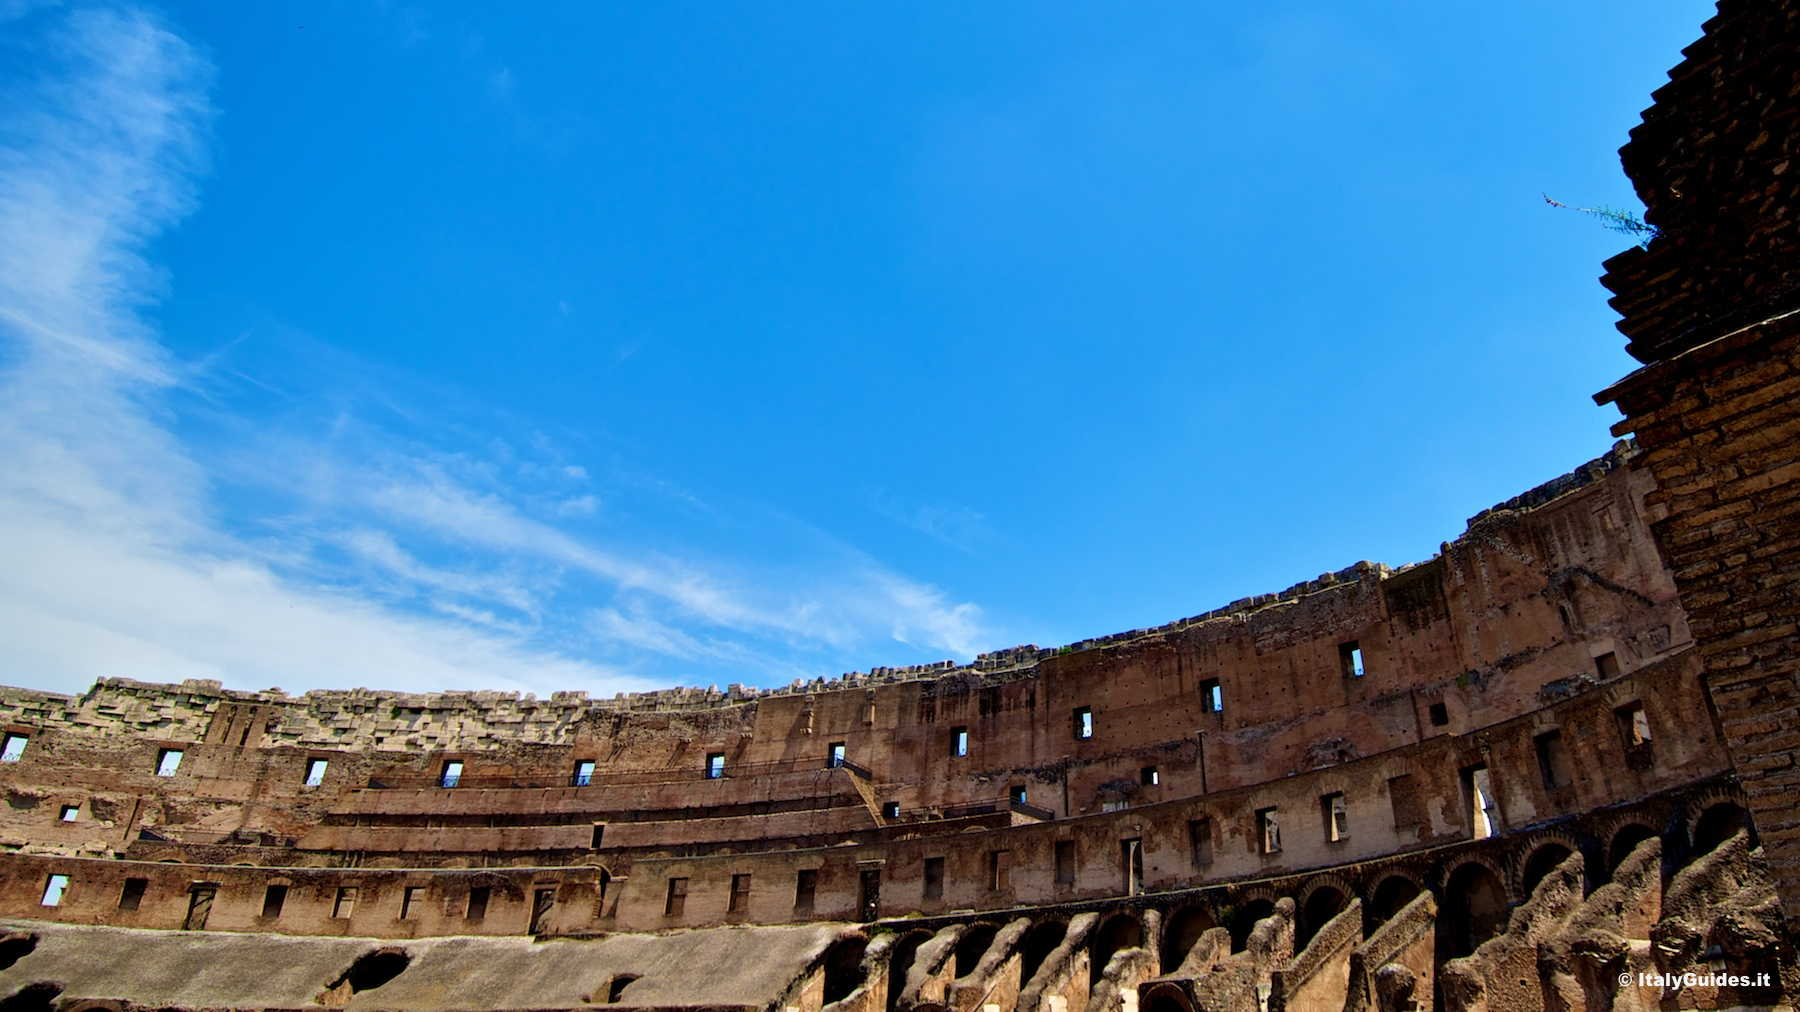 Guided tours of the Colosseum, Rome: tickitaly.com